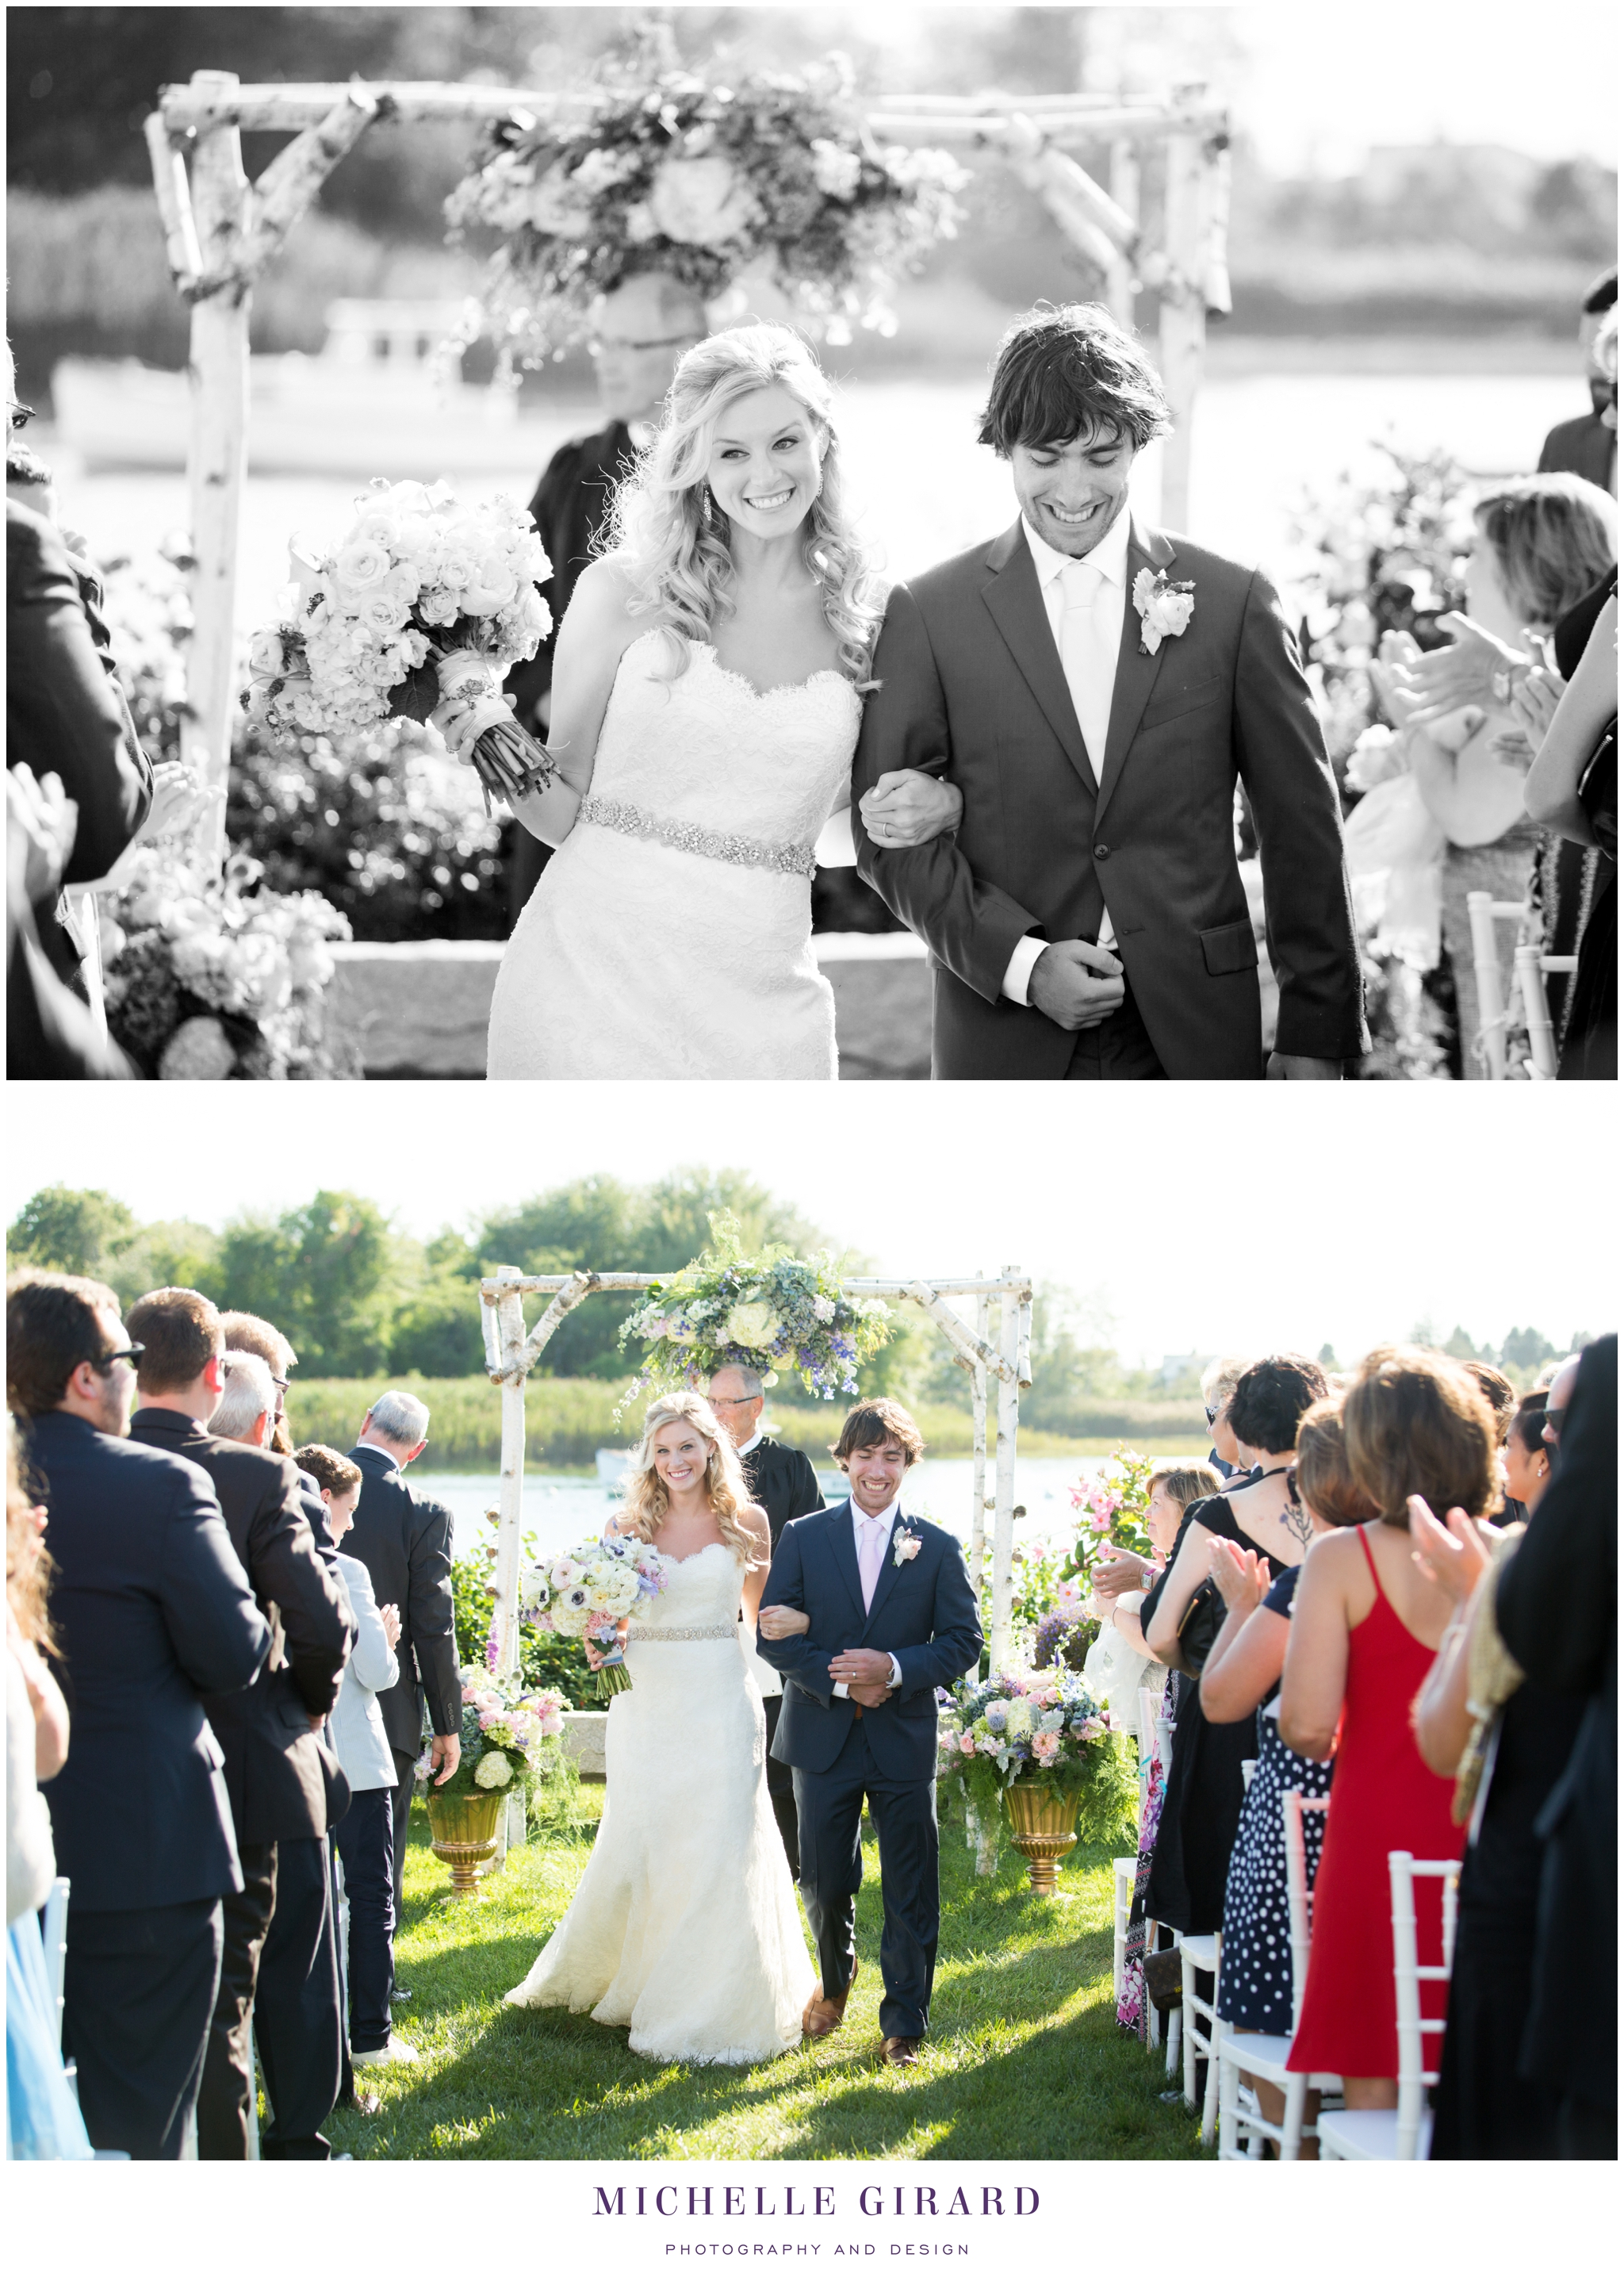 KennebunkportMaineWedding_NonantumResort_MichelleGirardPhotography34.jpg